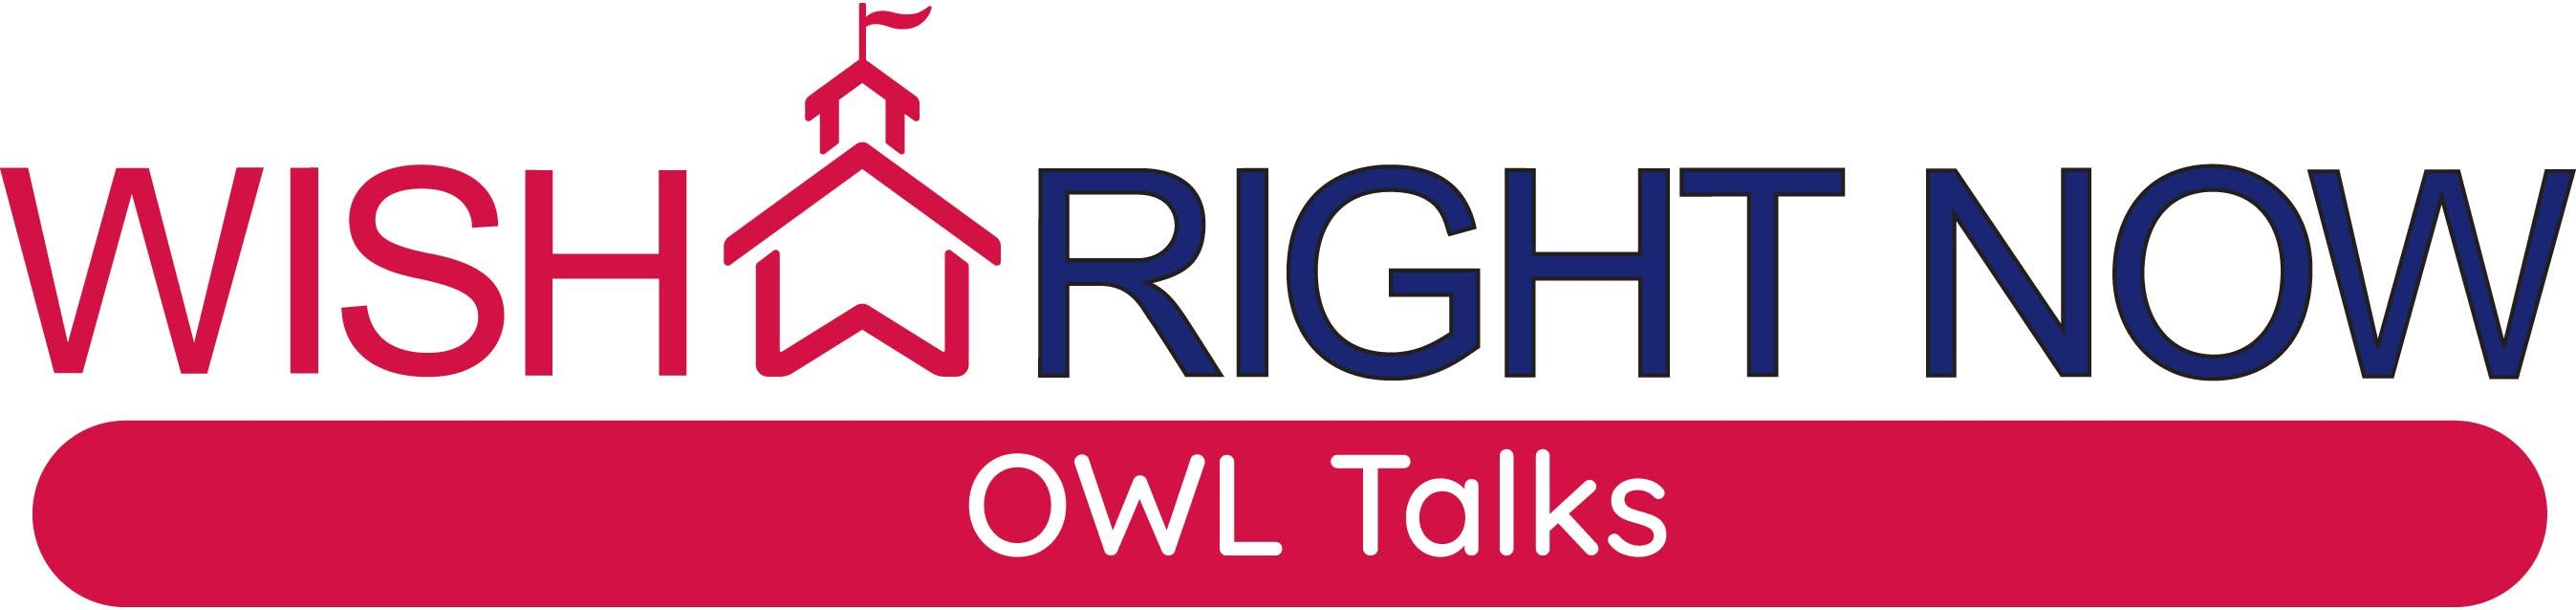 Owl talks logo